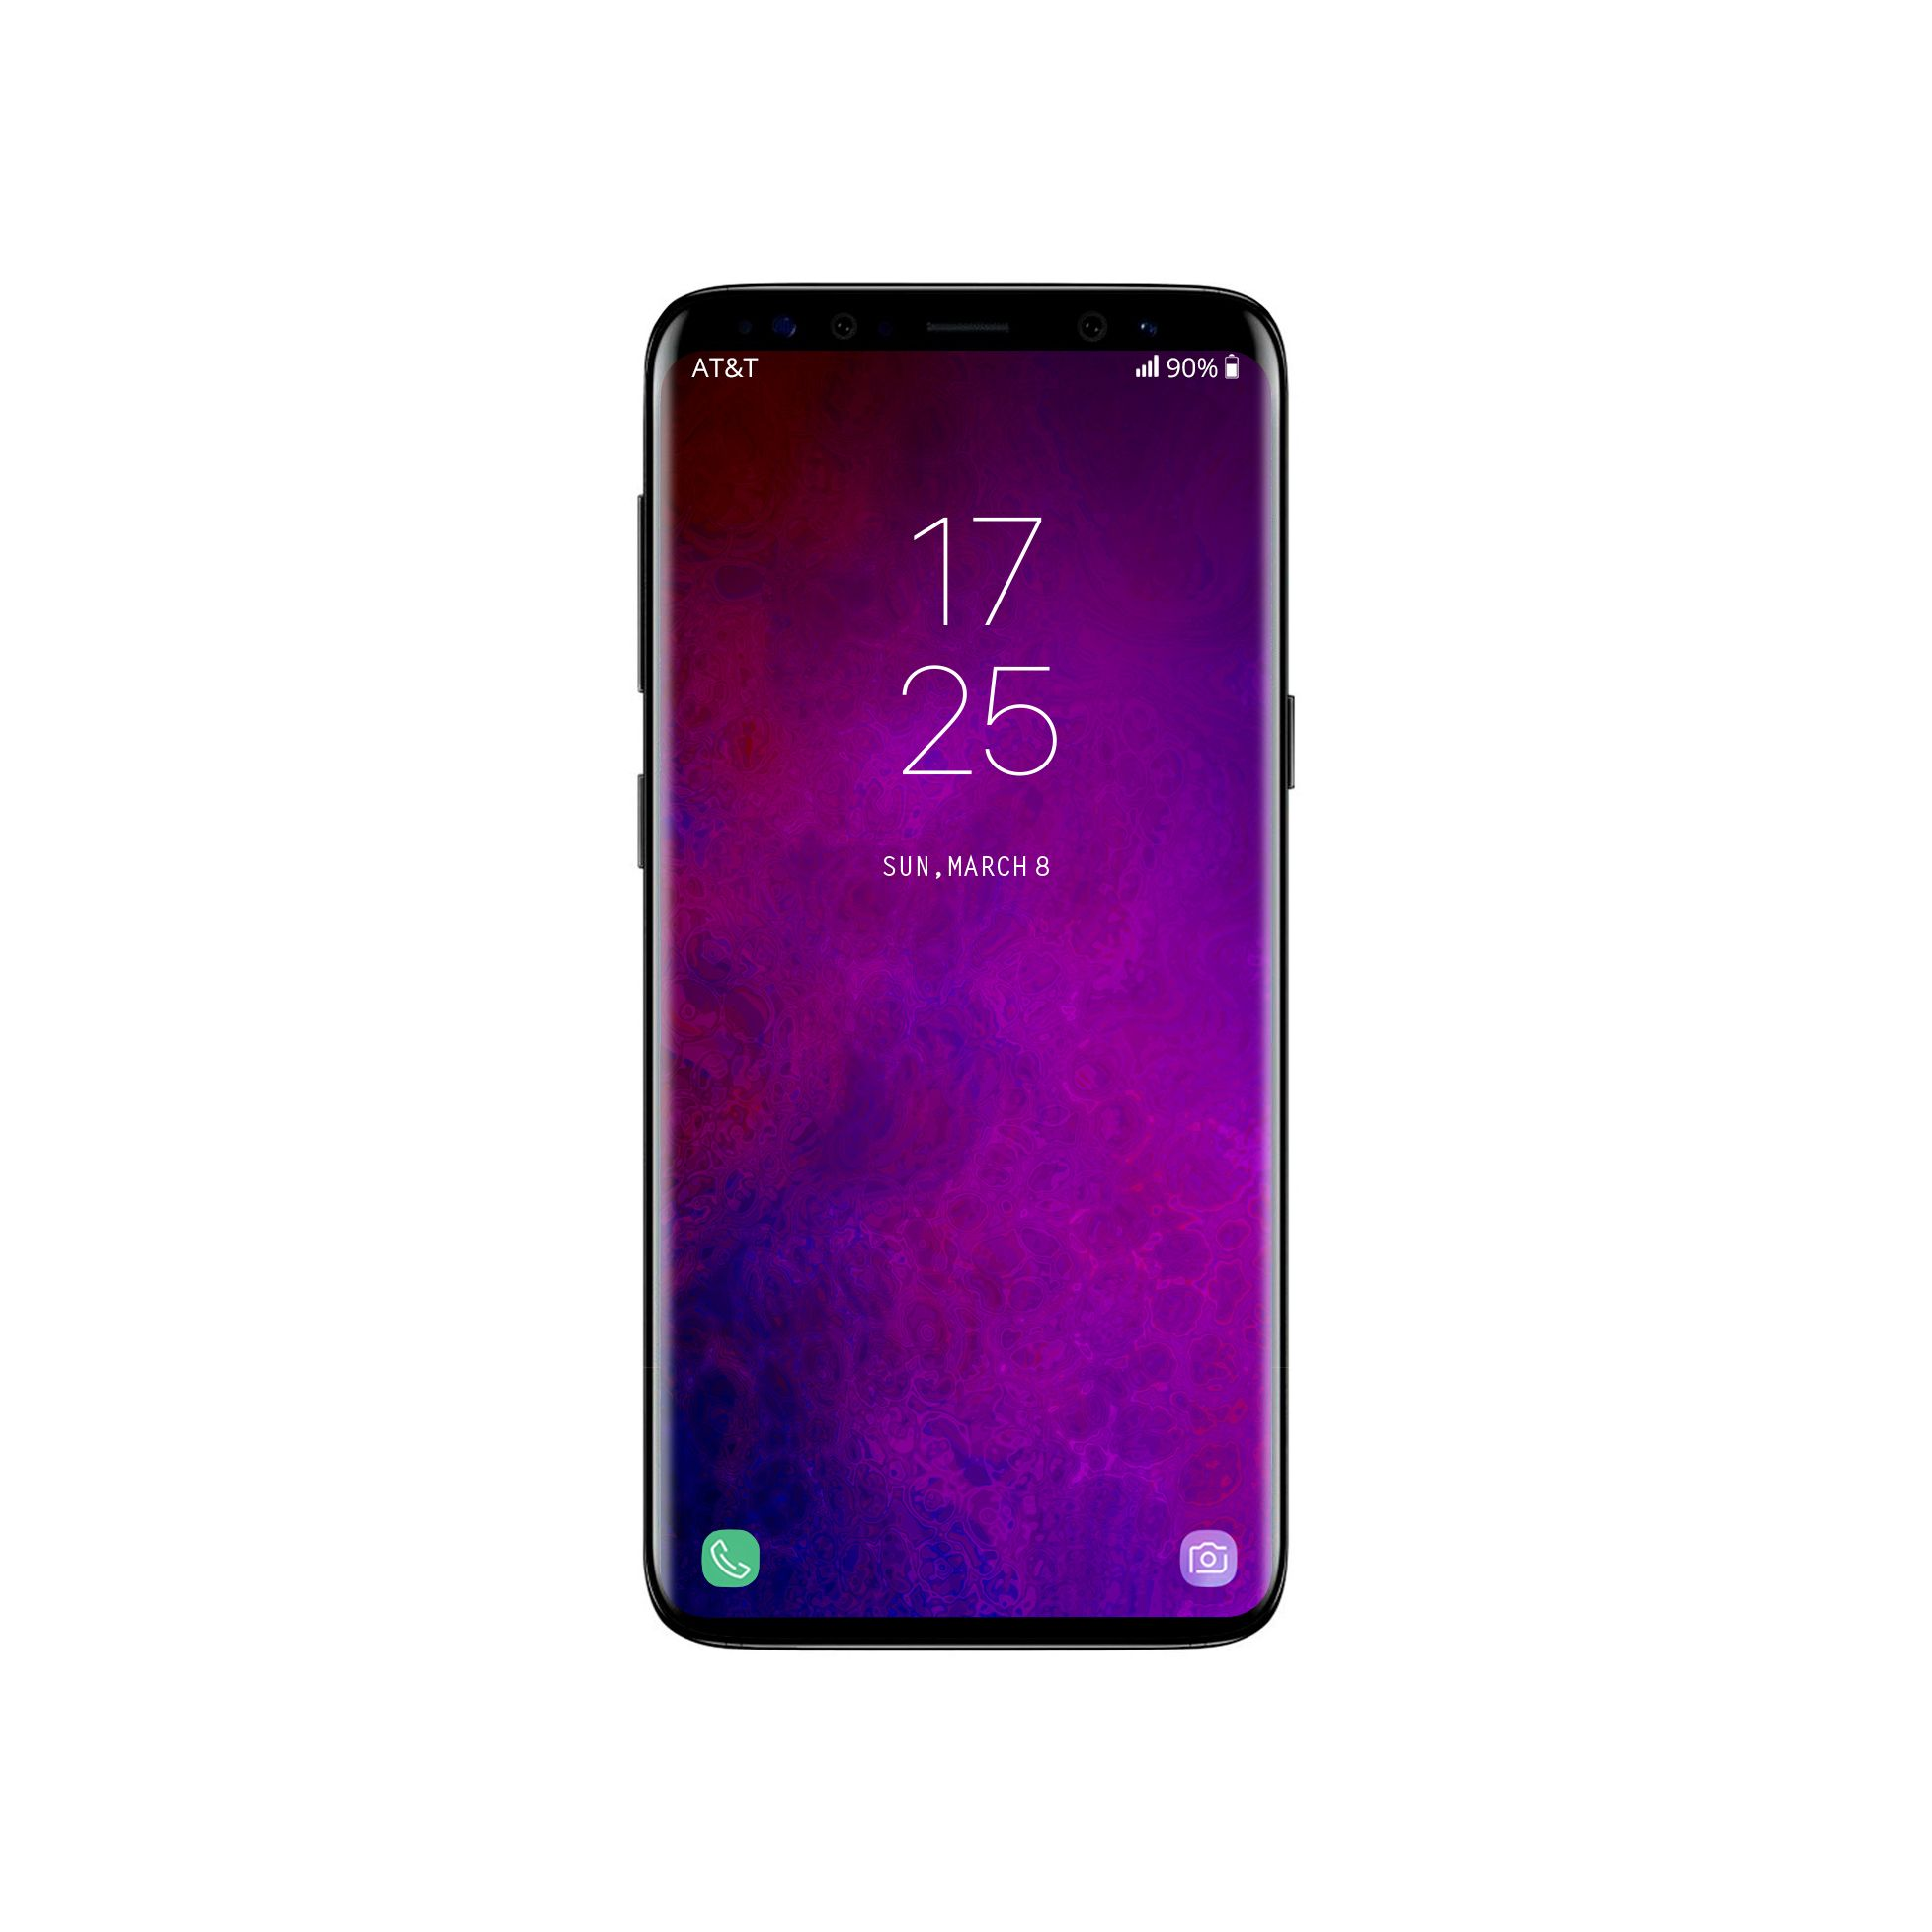 Preludium - Minimalist Wallpaper for #Samsung S8 and #S9